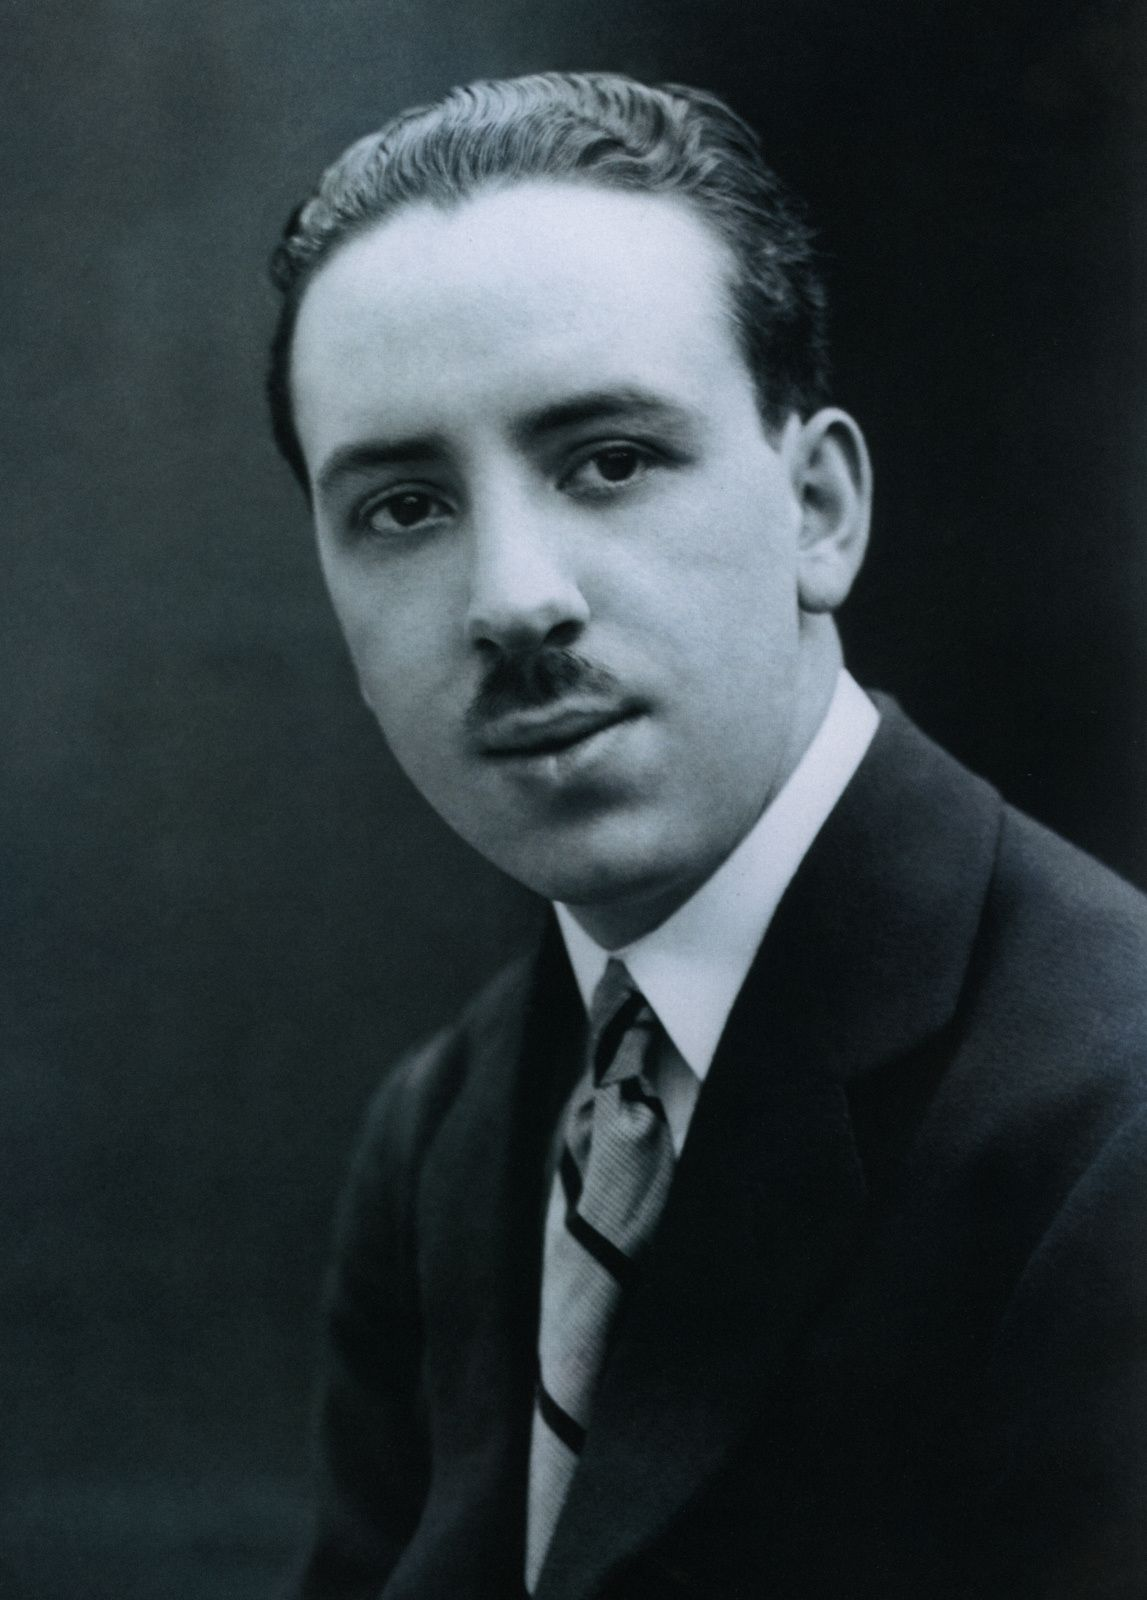 Young Alfred Hitchcock, early 1920s